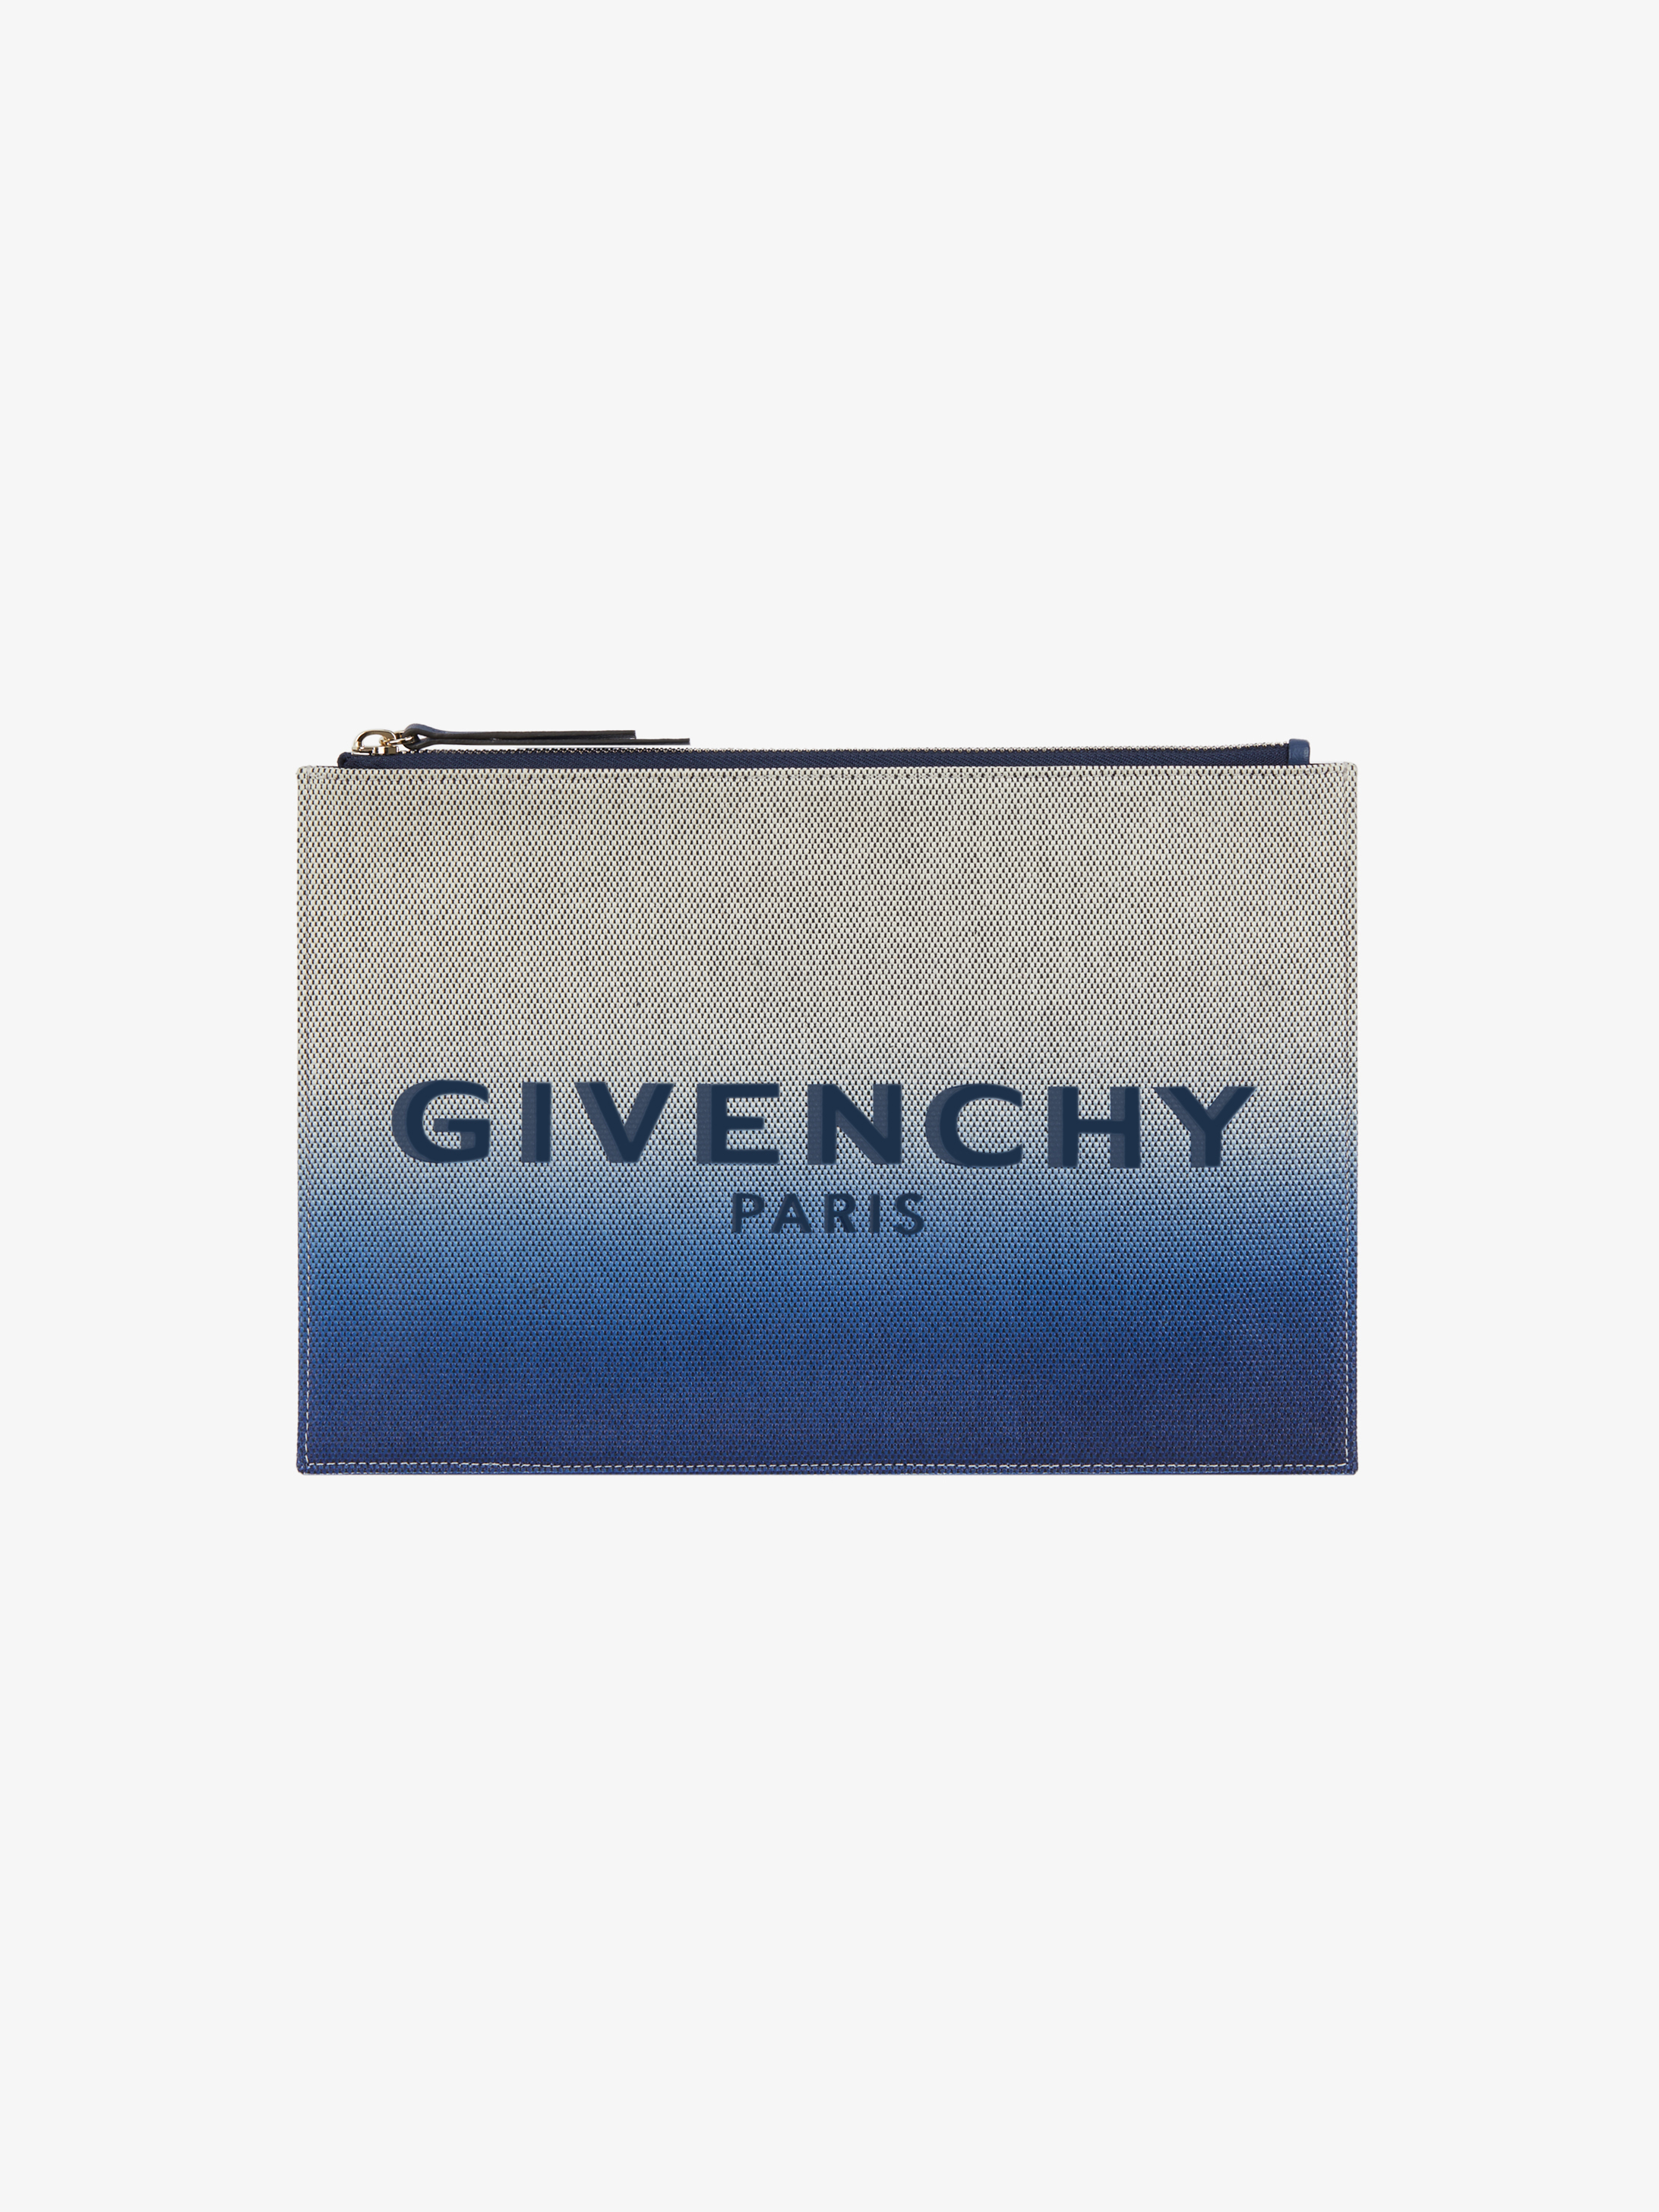 GIVENCHY PARIS medium pouch in faded canvas